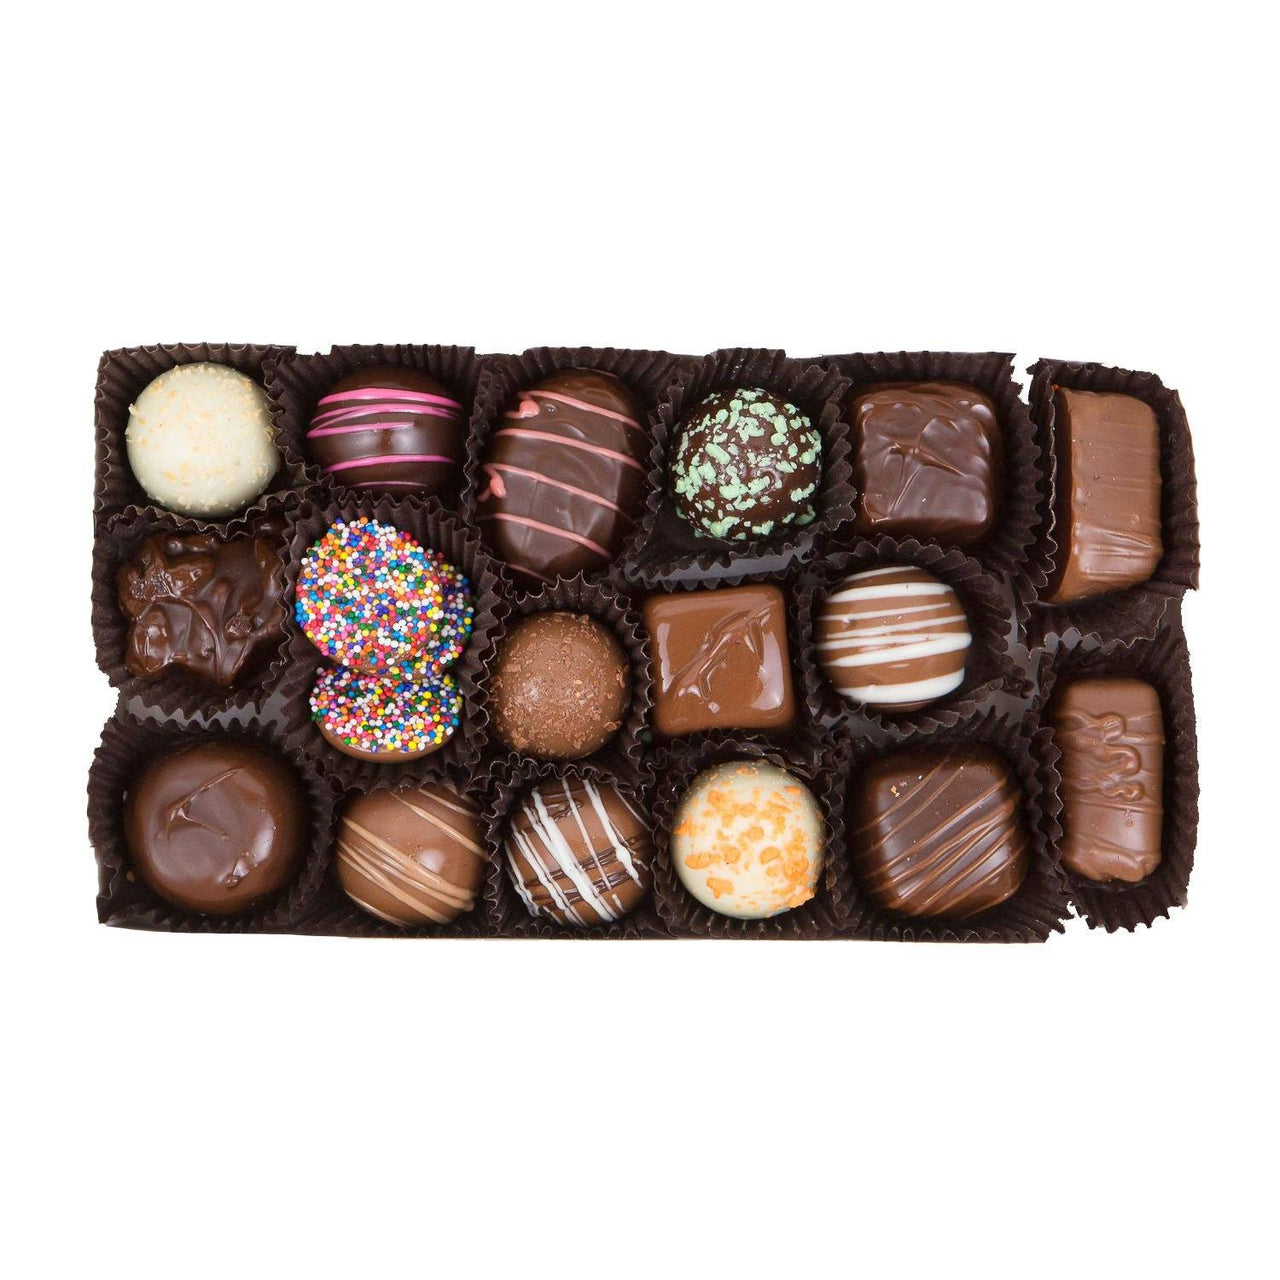 Gifts for Dad - Assorted Chocolate Gift Box - Jackie's Chocolate